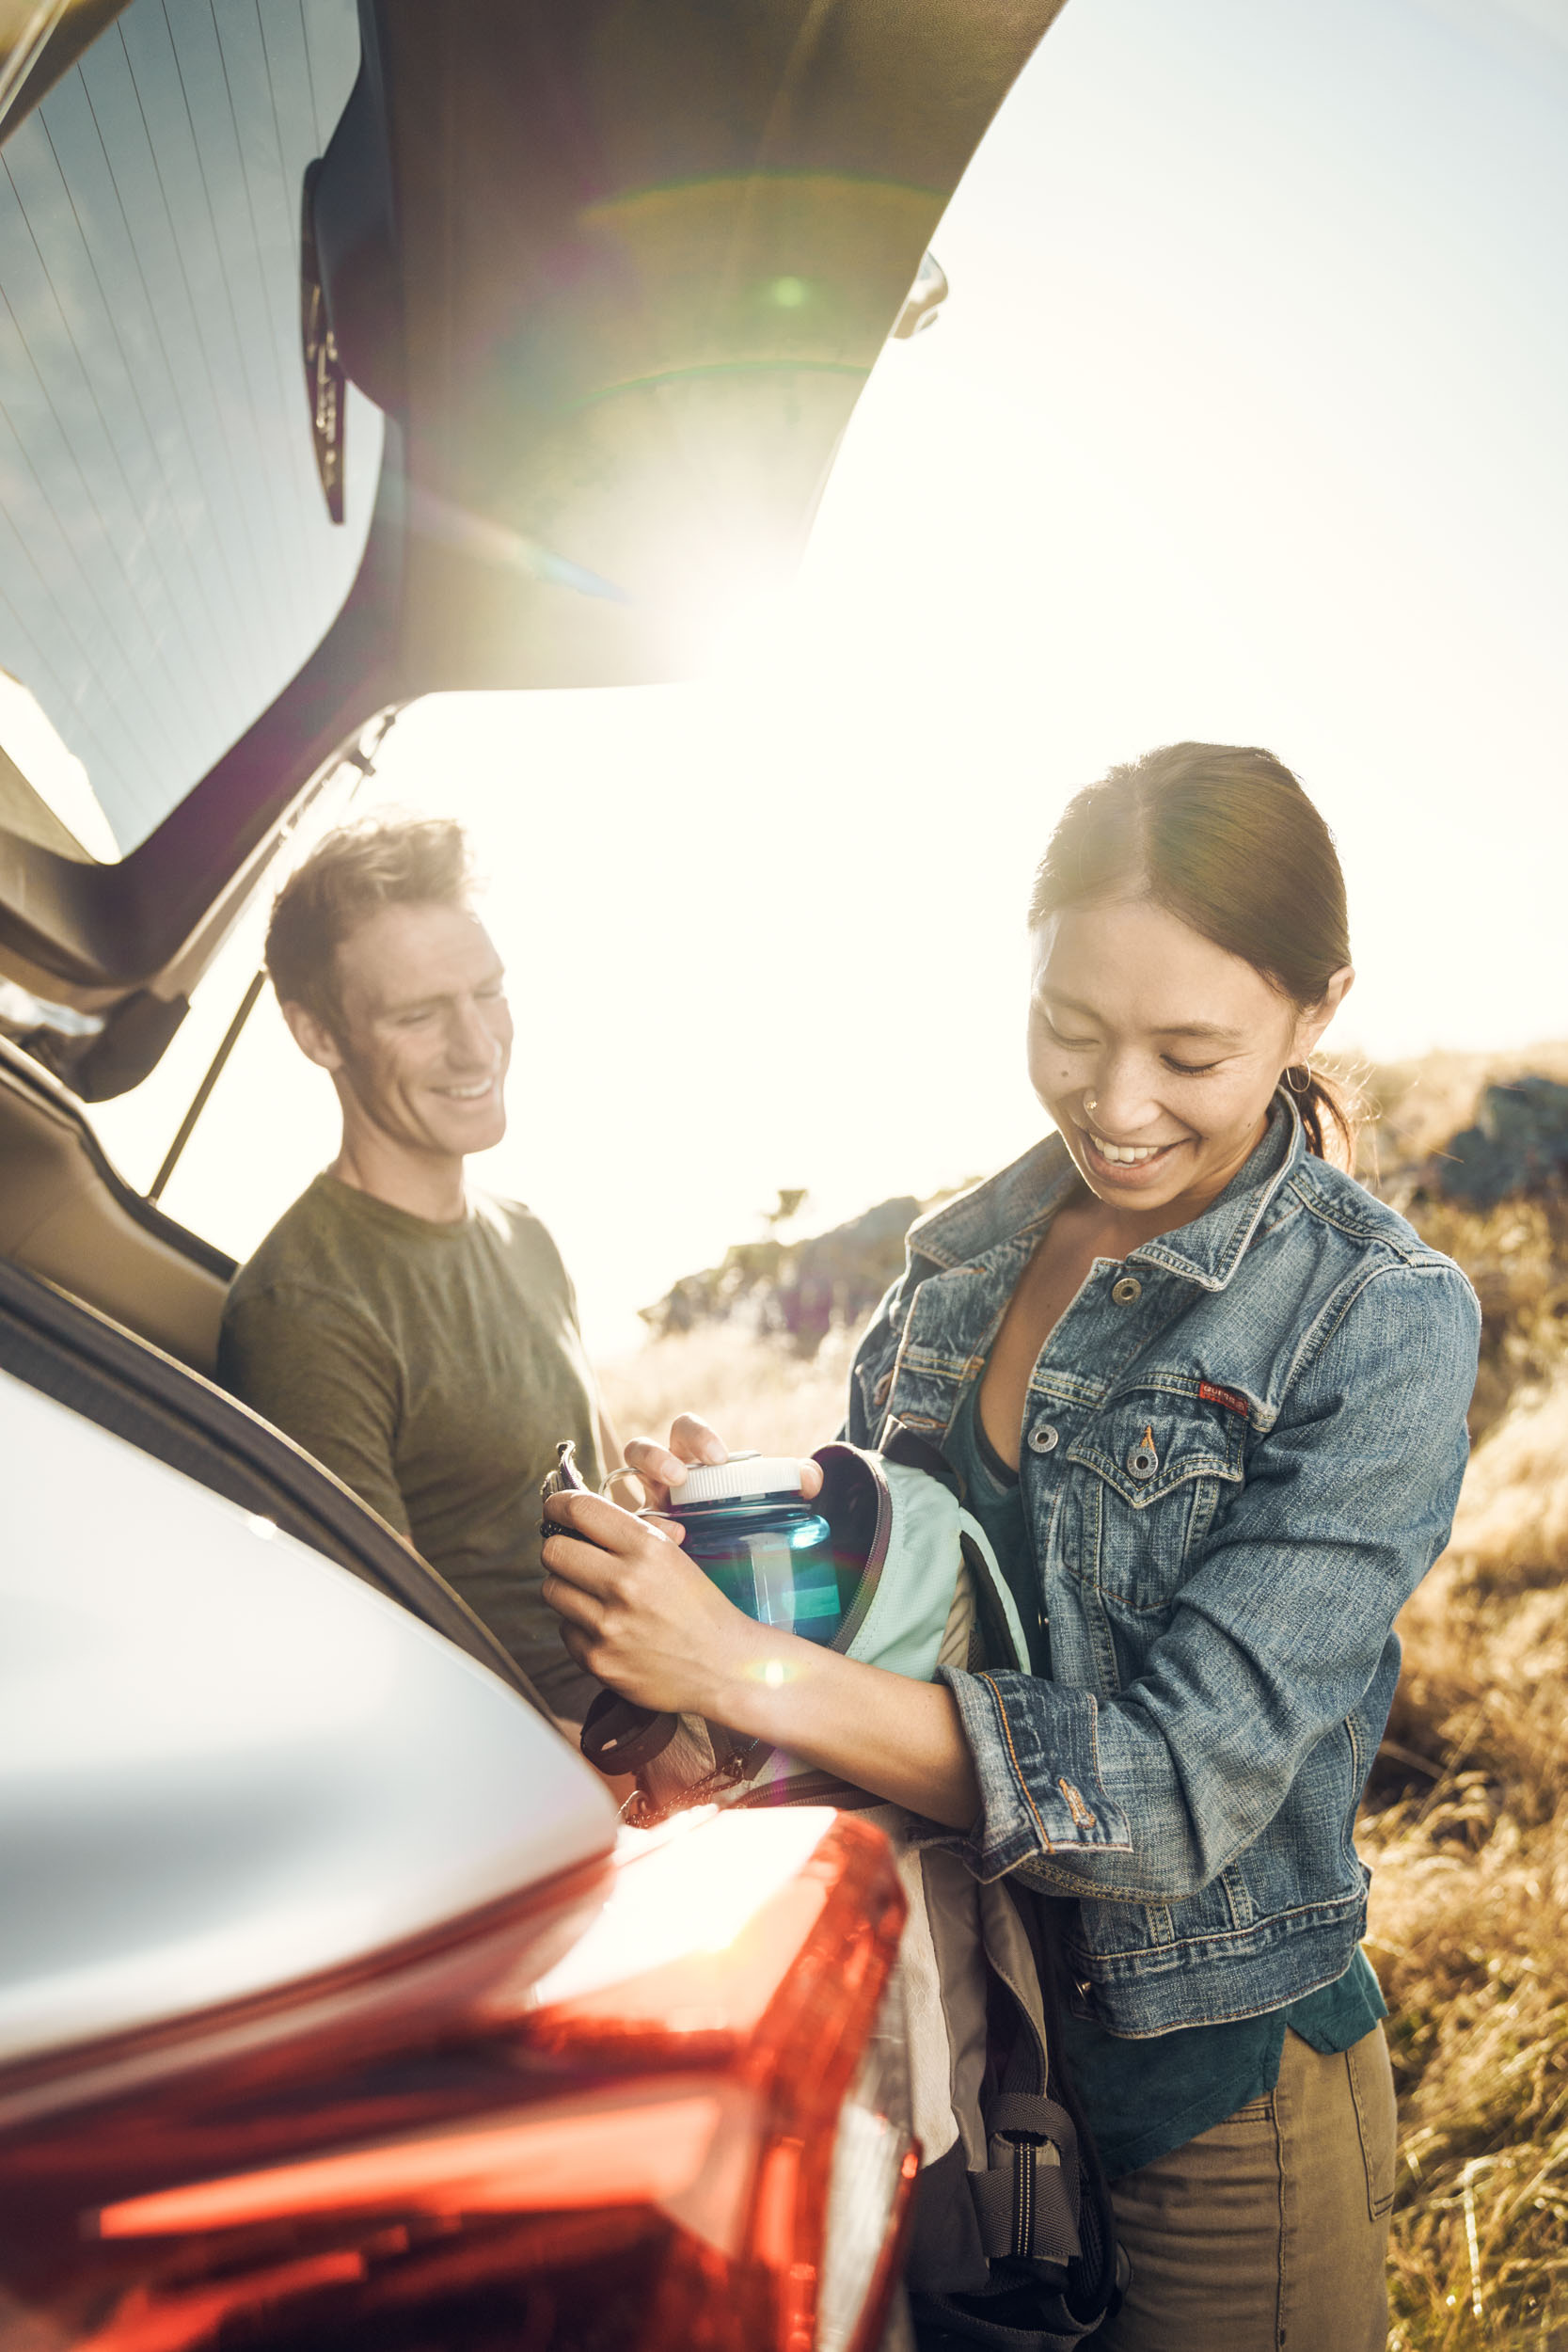 A female laughs were her male friend as they prepare their hiking gear at the tailgate of their Subaru Crosstrek